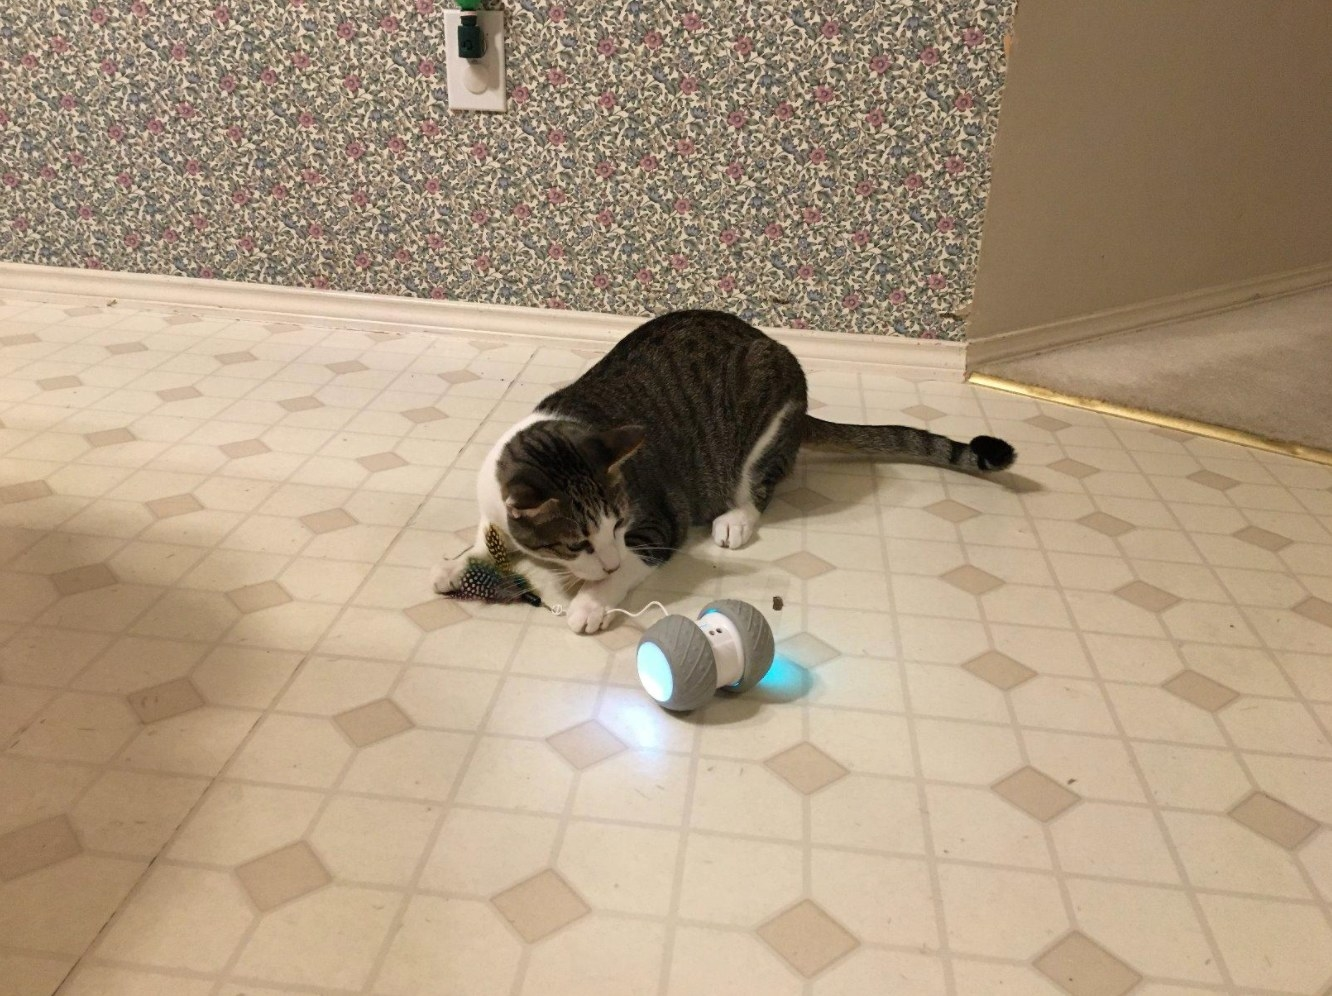 cat chasing the wheeled robot with a hanging string